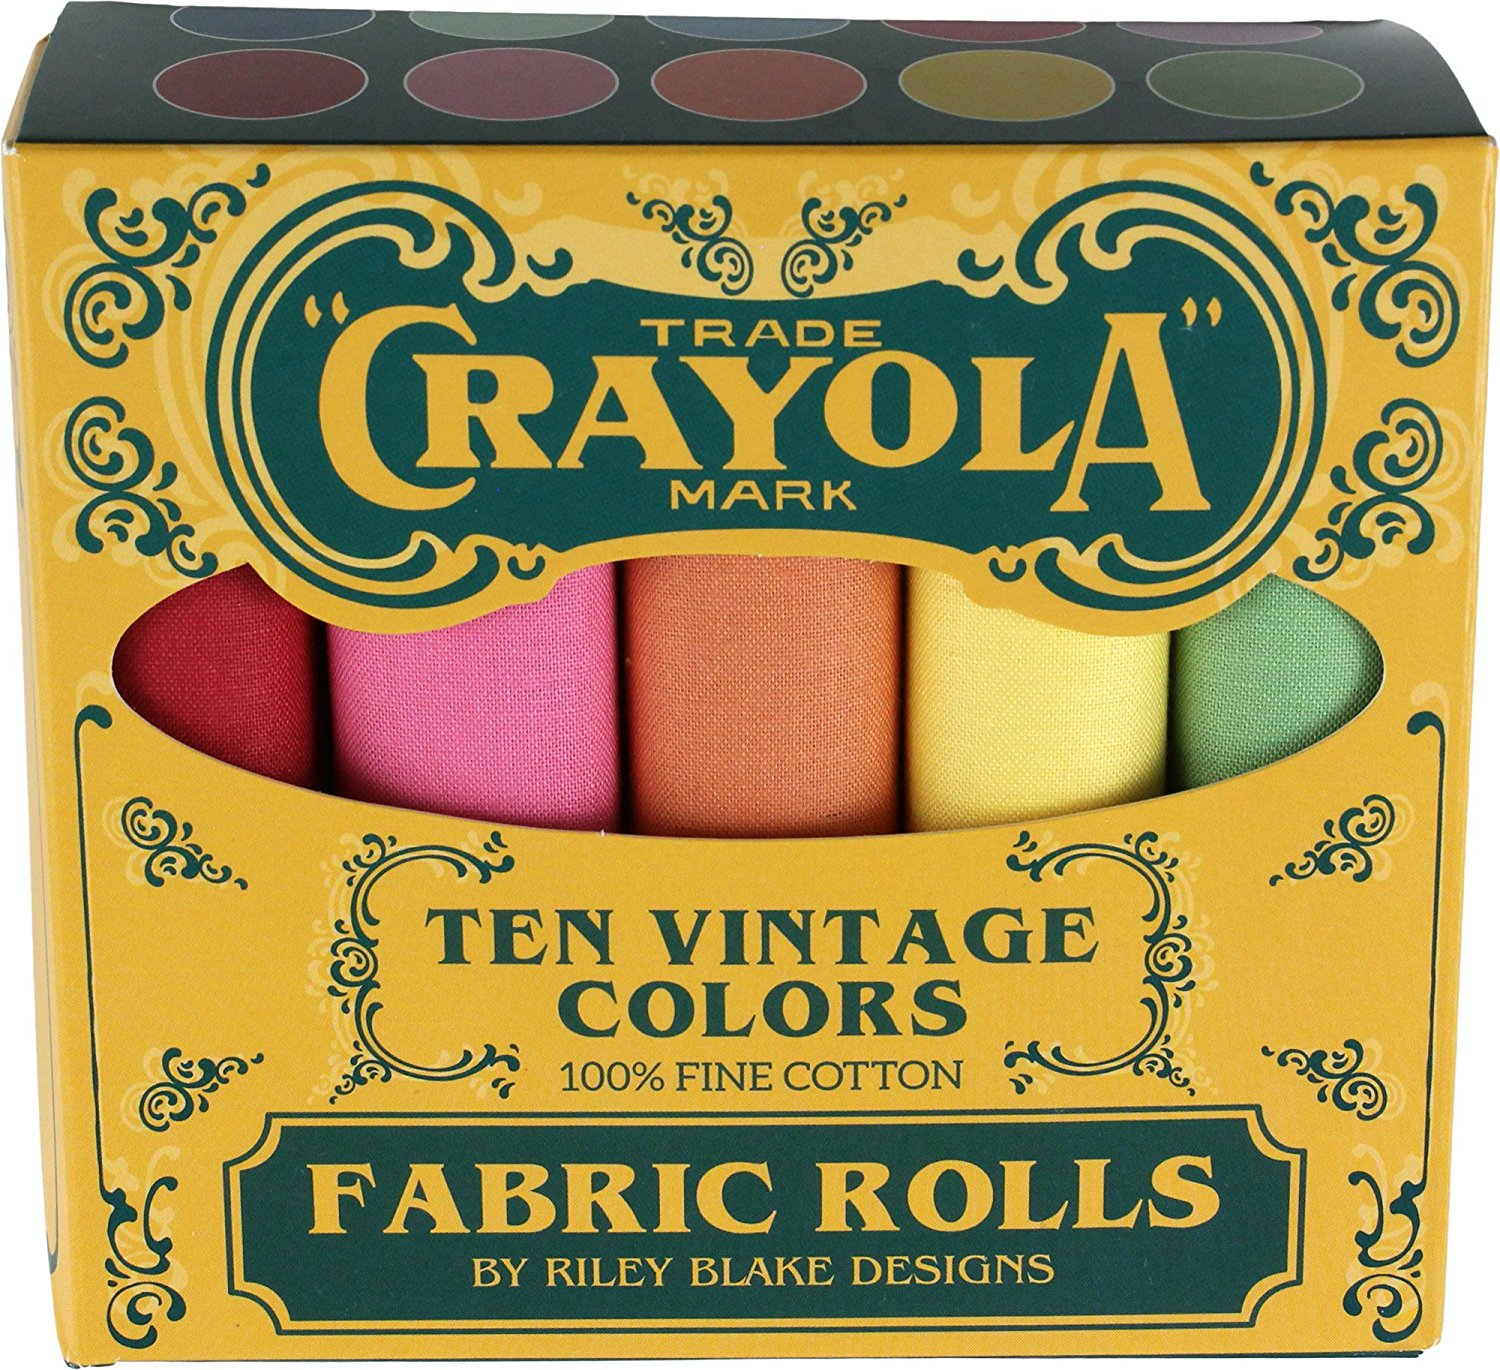 Confetti Cottons Vintage Crayola Fat Quarter Box - 10pcs